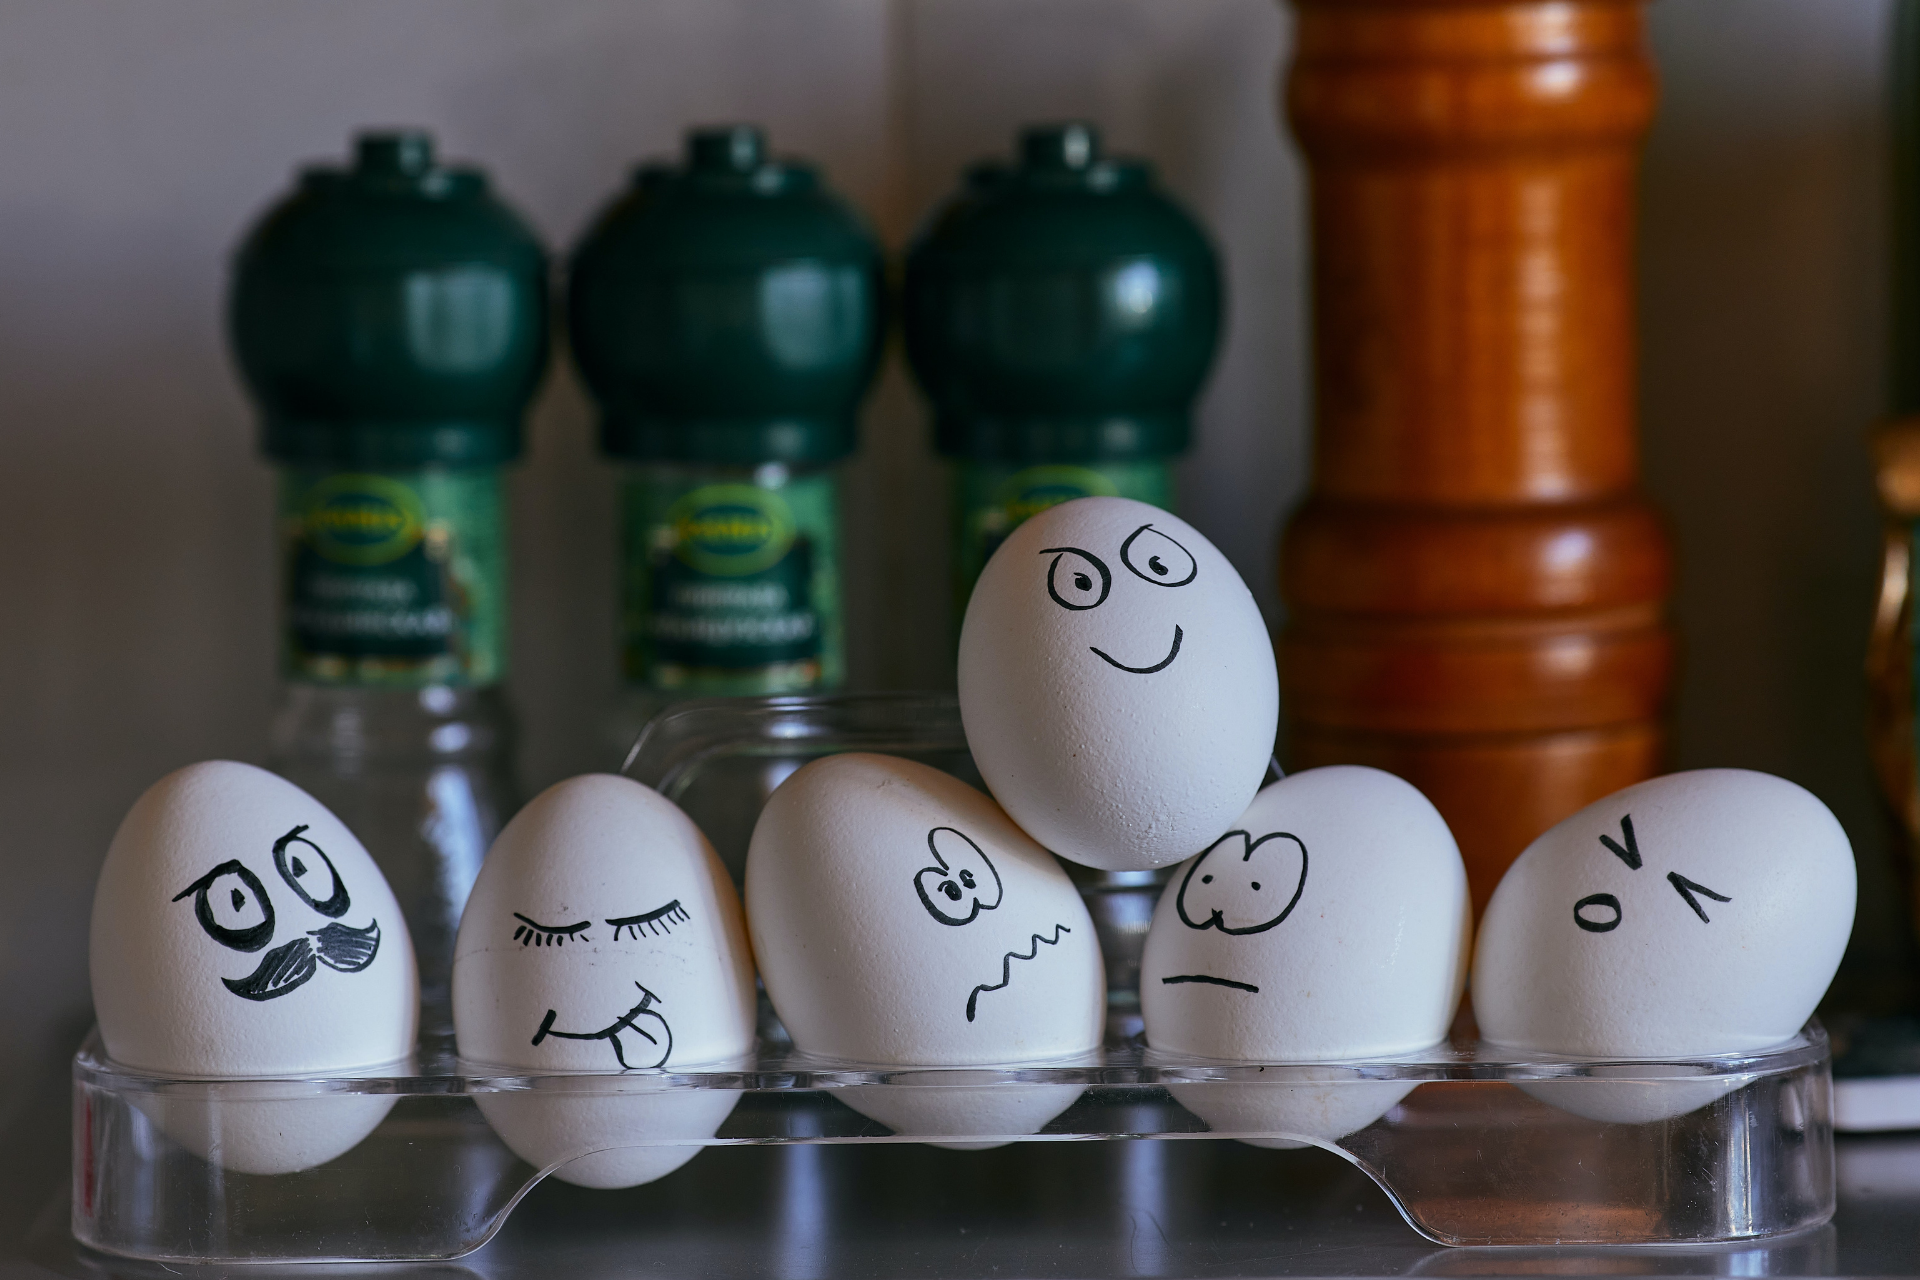 A mix of emotions represented on eggs.